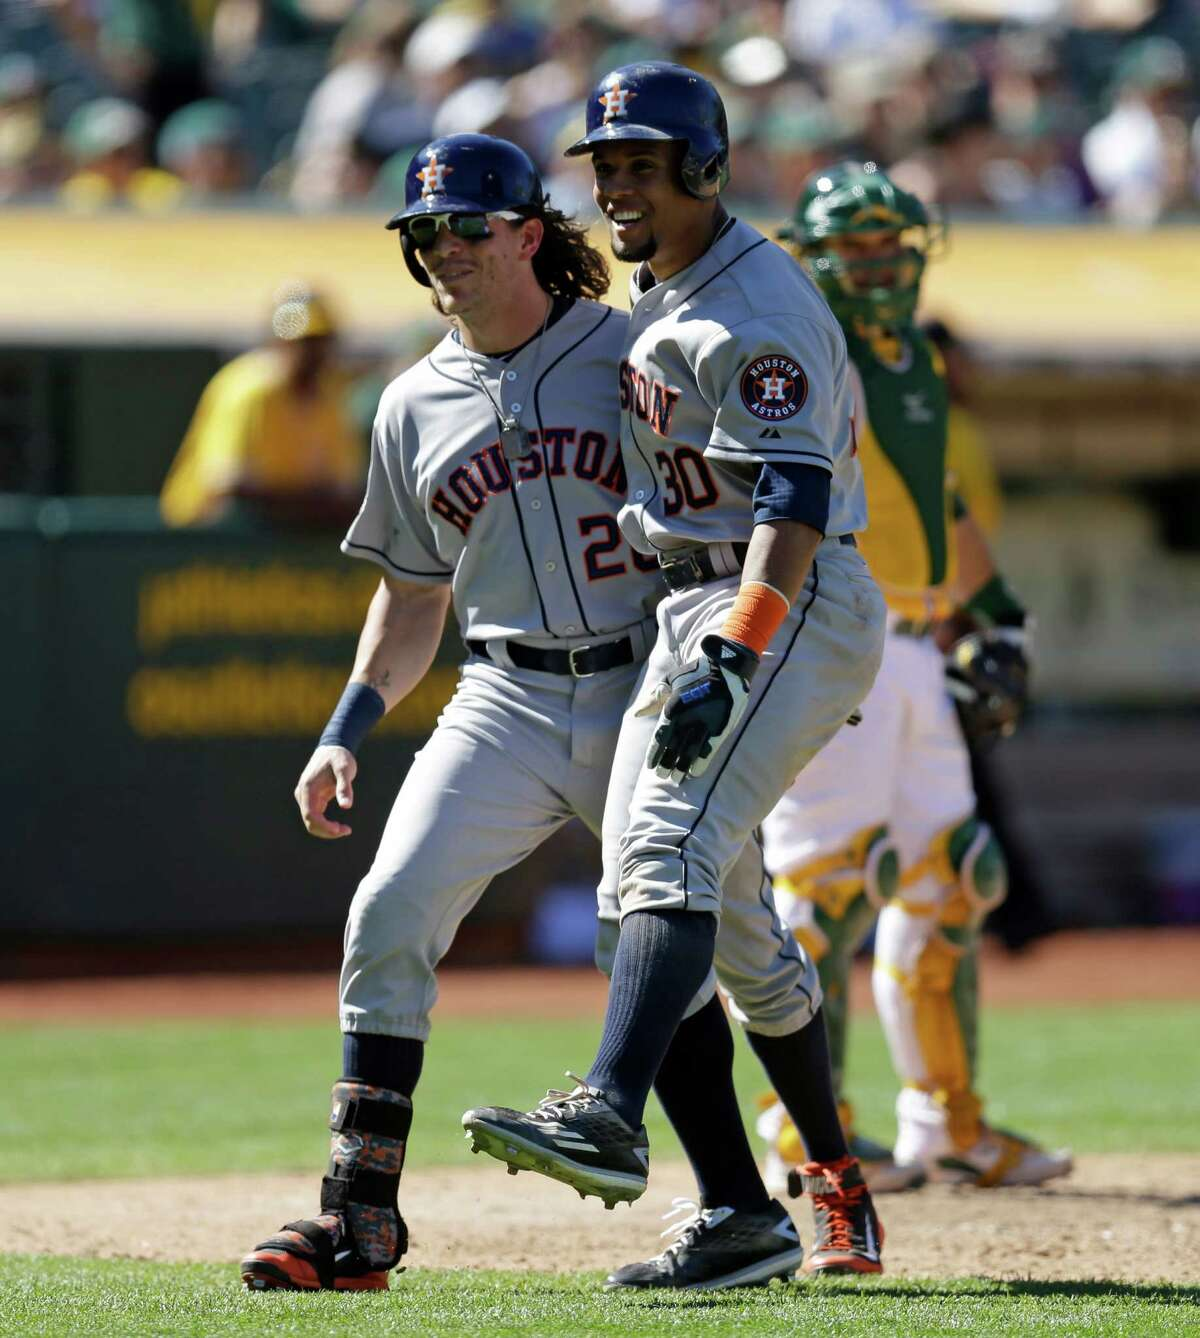 Houston Astros' Colby Rasmus, right, and Carlos Gomez (30) celebrate after Rasmus hit a three run home run off Oakland Athletics' Edward Mujica in the ninth inning of a baseball game Sunday, Aug. 9, 2015, in Oakland, Calif. (AP Photo/Ben Margot)